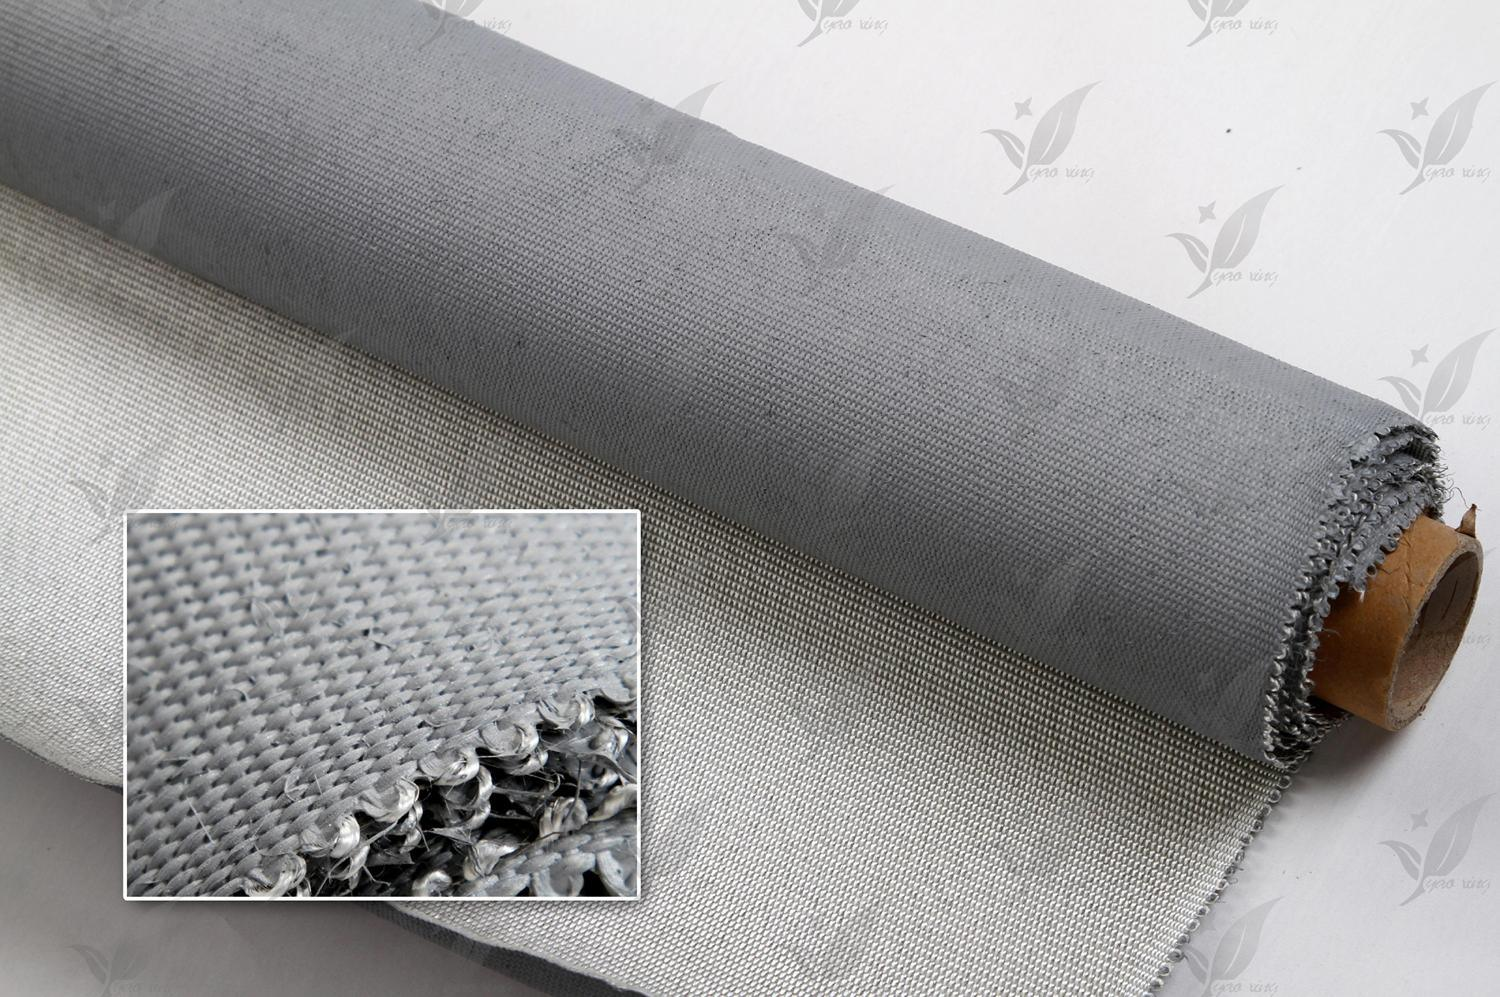 Fireproof Silicone Coated Fabric of Glass Fiber